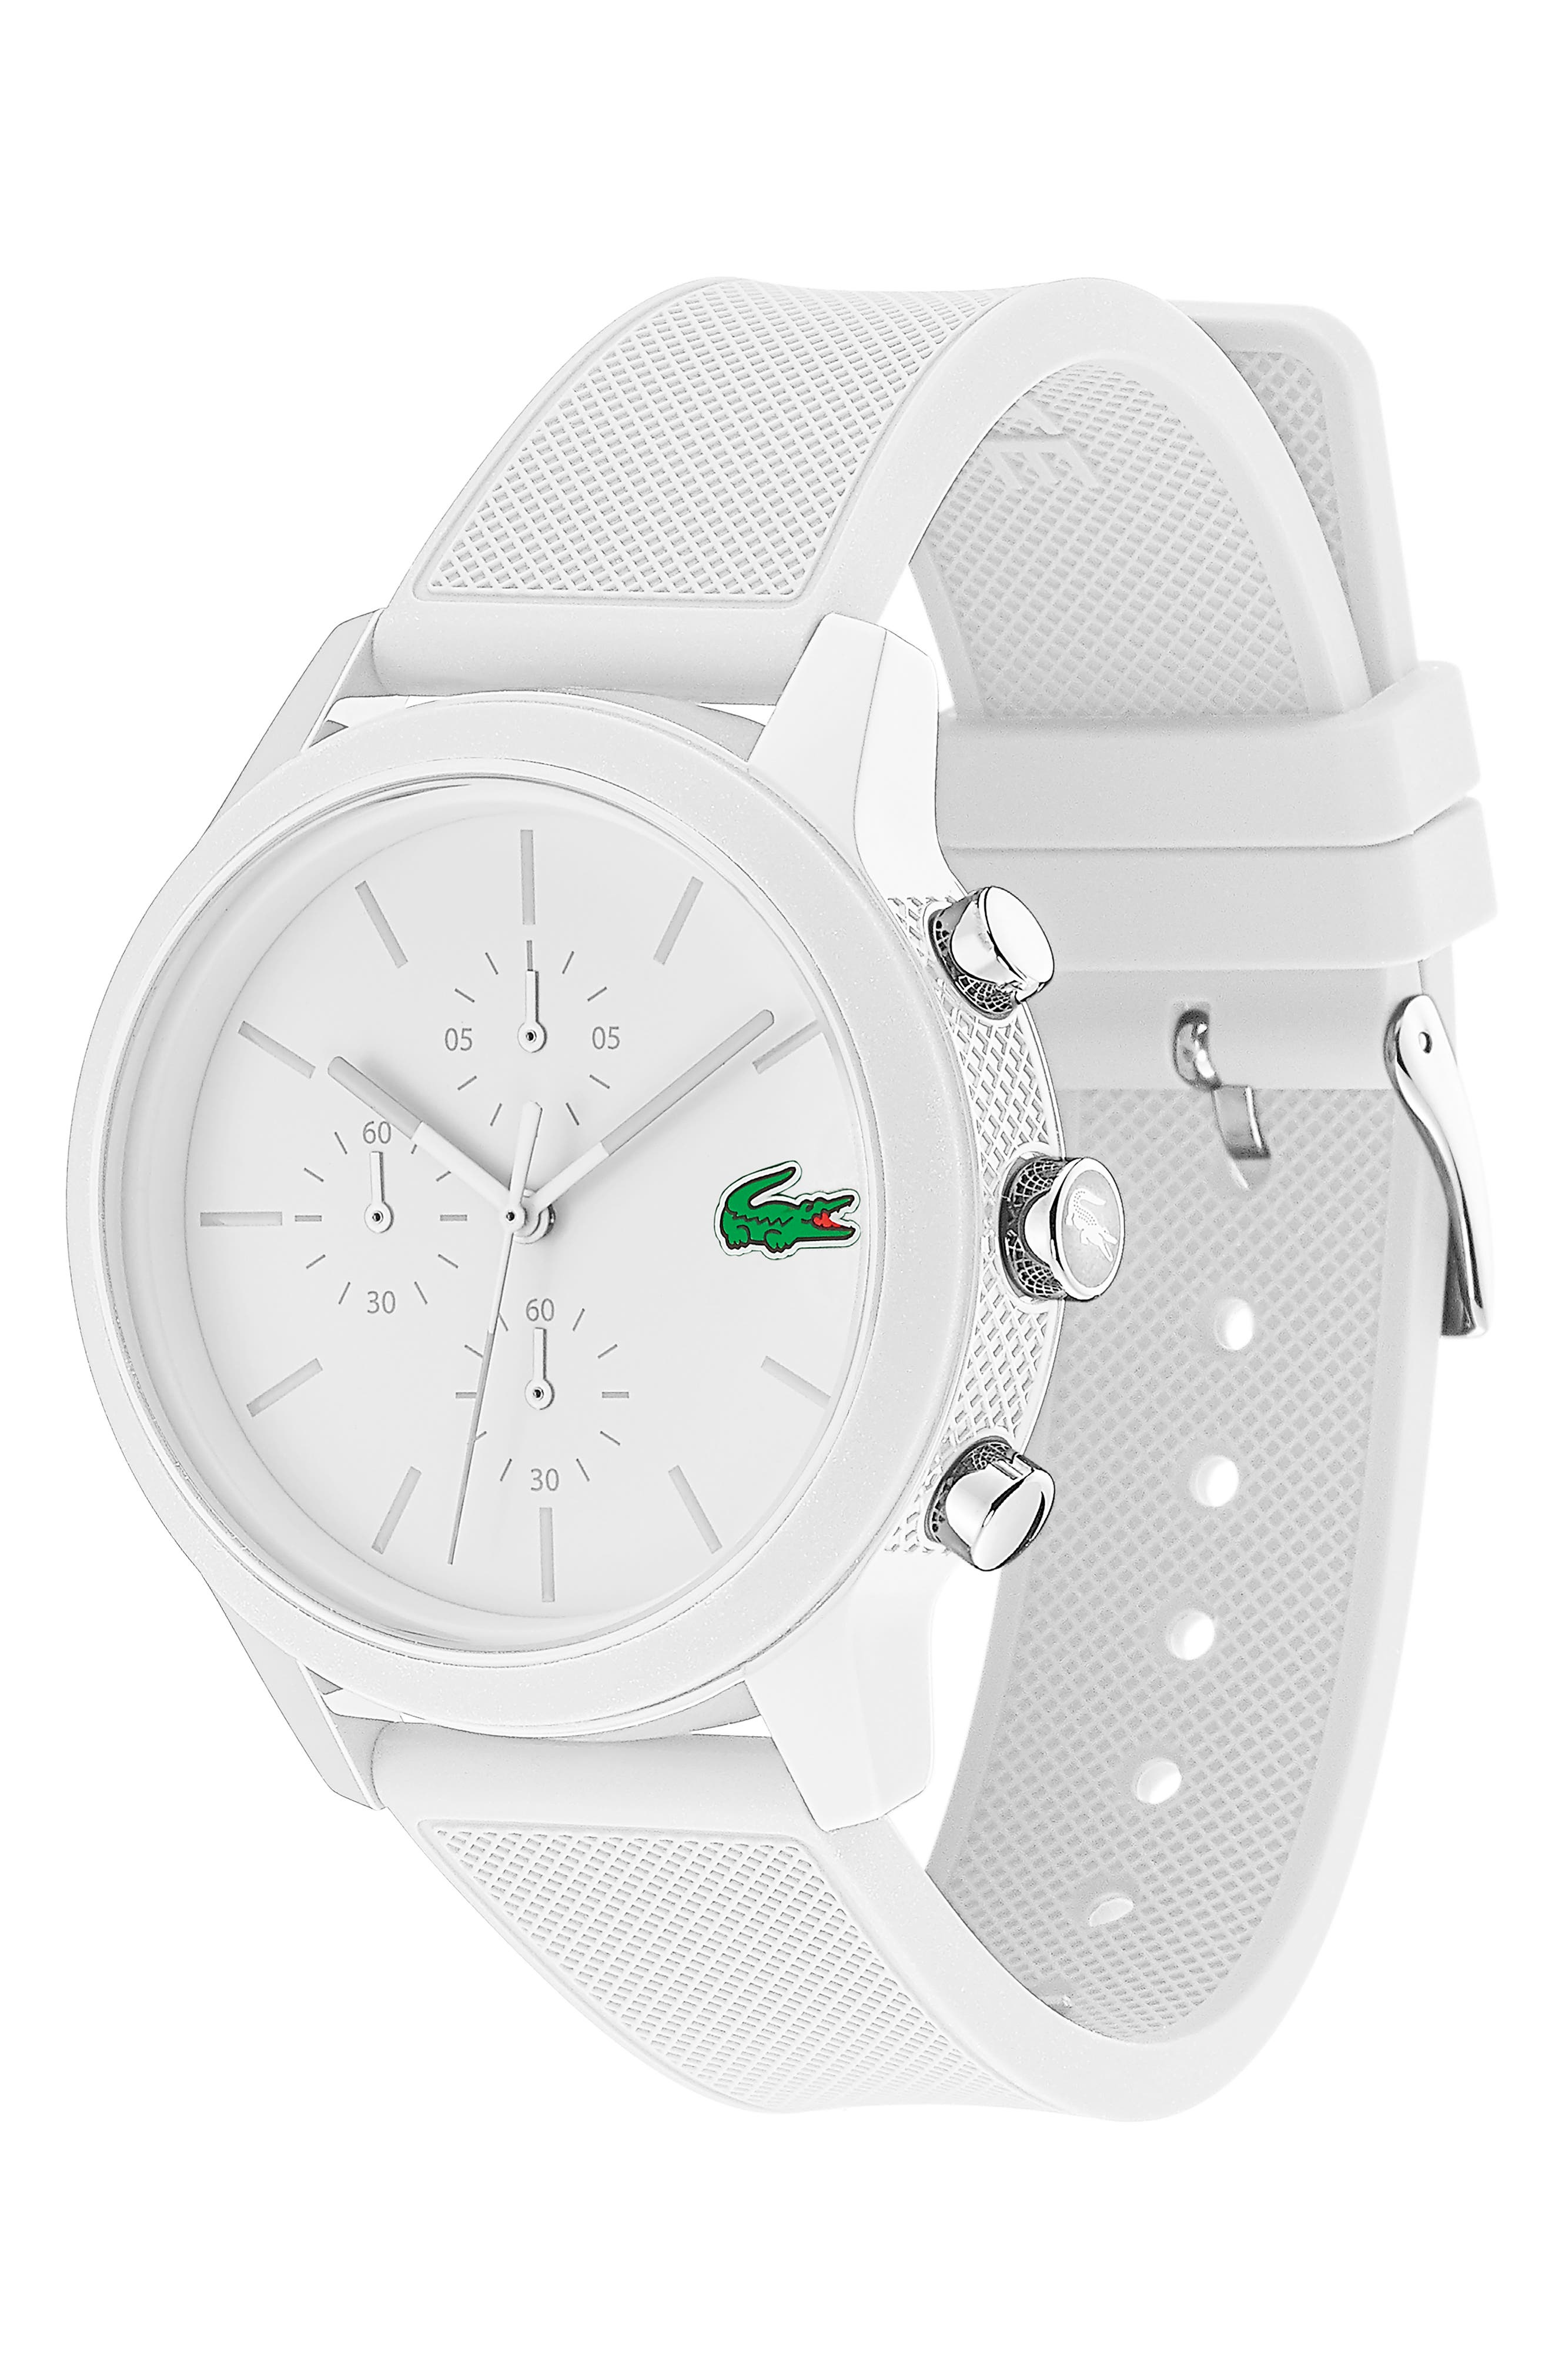 LACOSTE, 12.12 Chronograph Silicone Band Watch, 44mm, Alternate thumbnail 3, color, WHITE